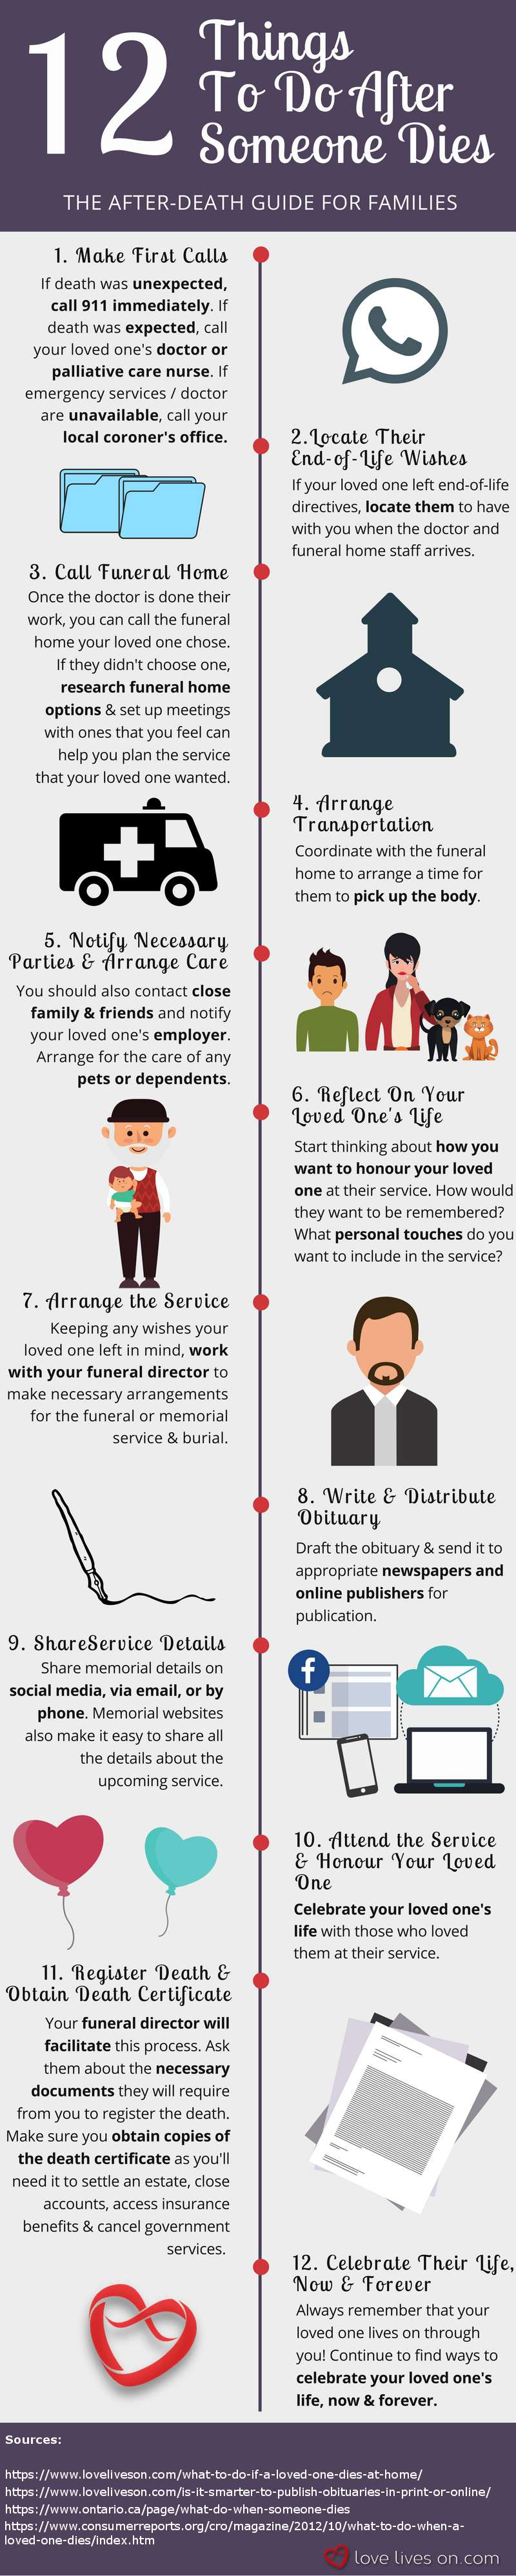 12 Things to Do When Someone Dies [Infographic]